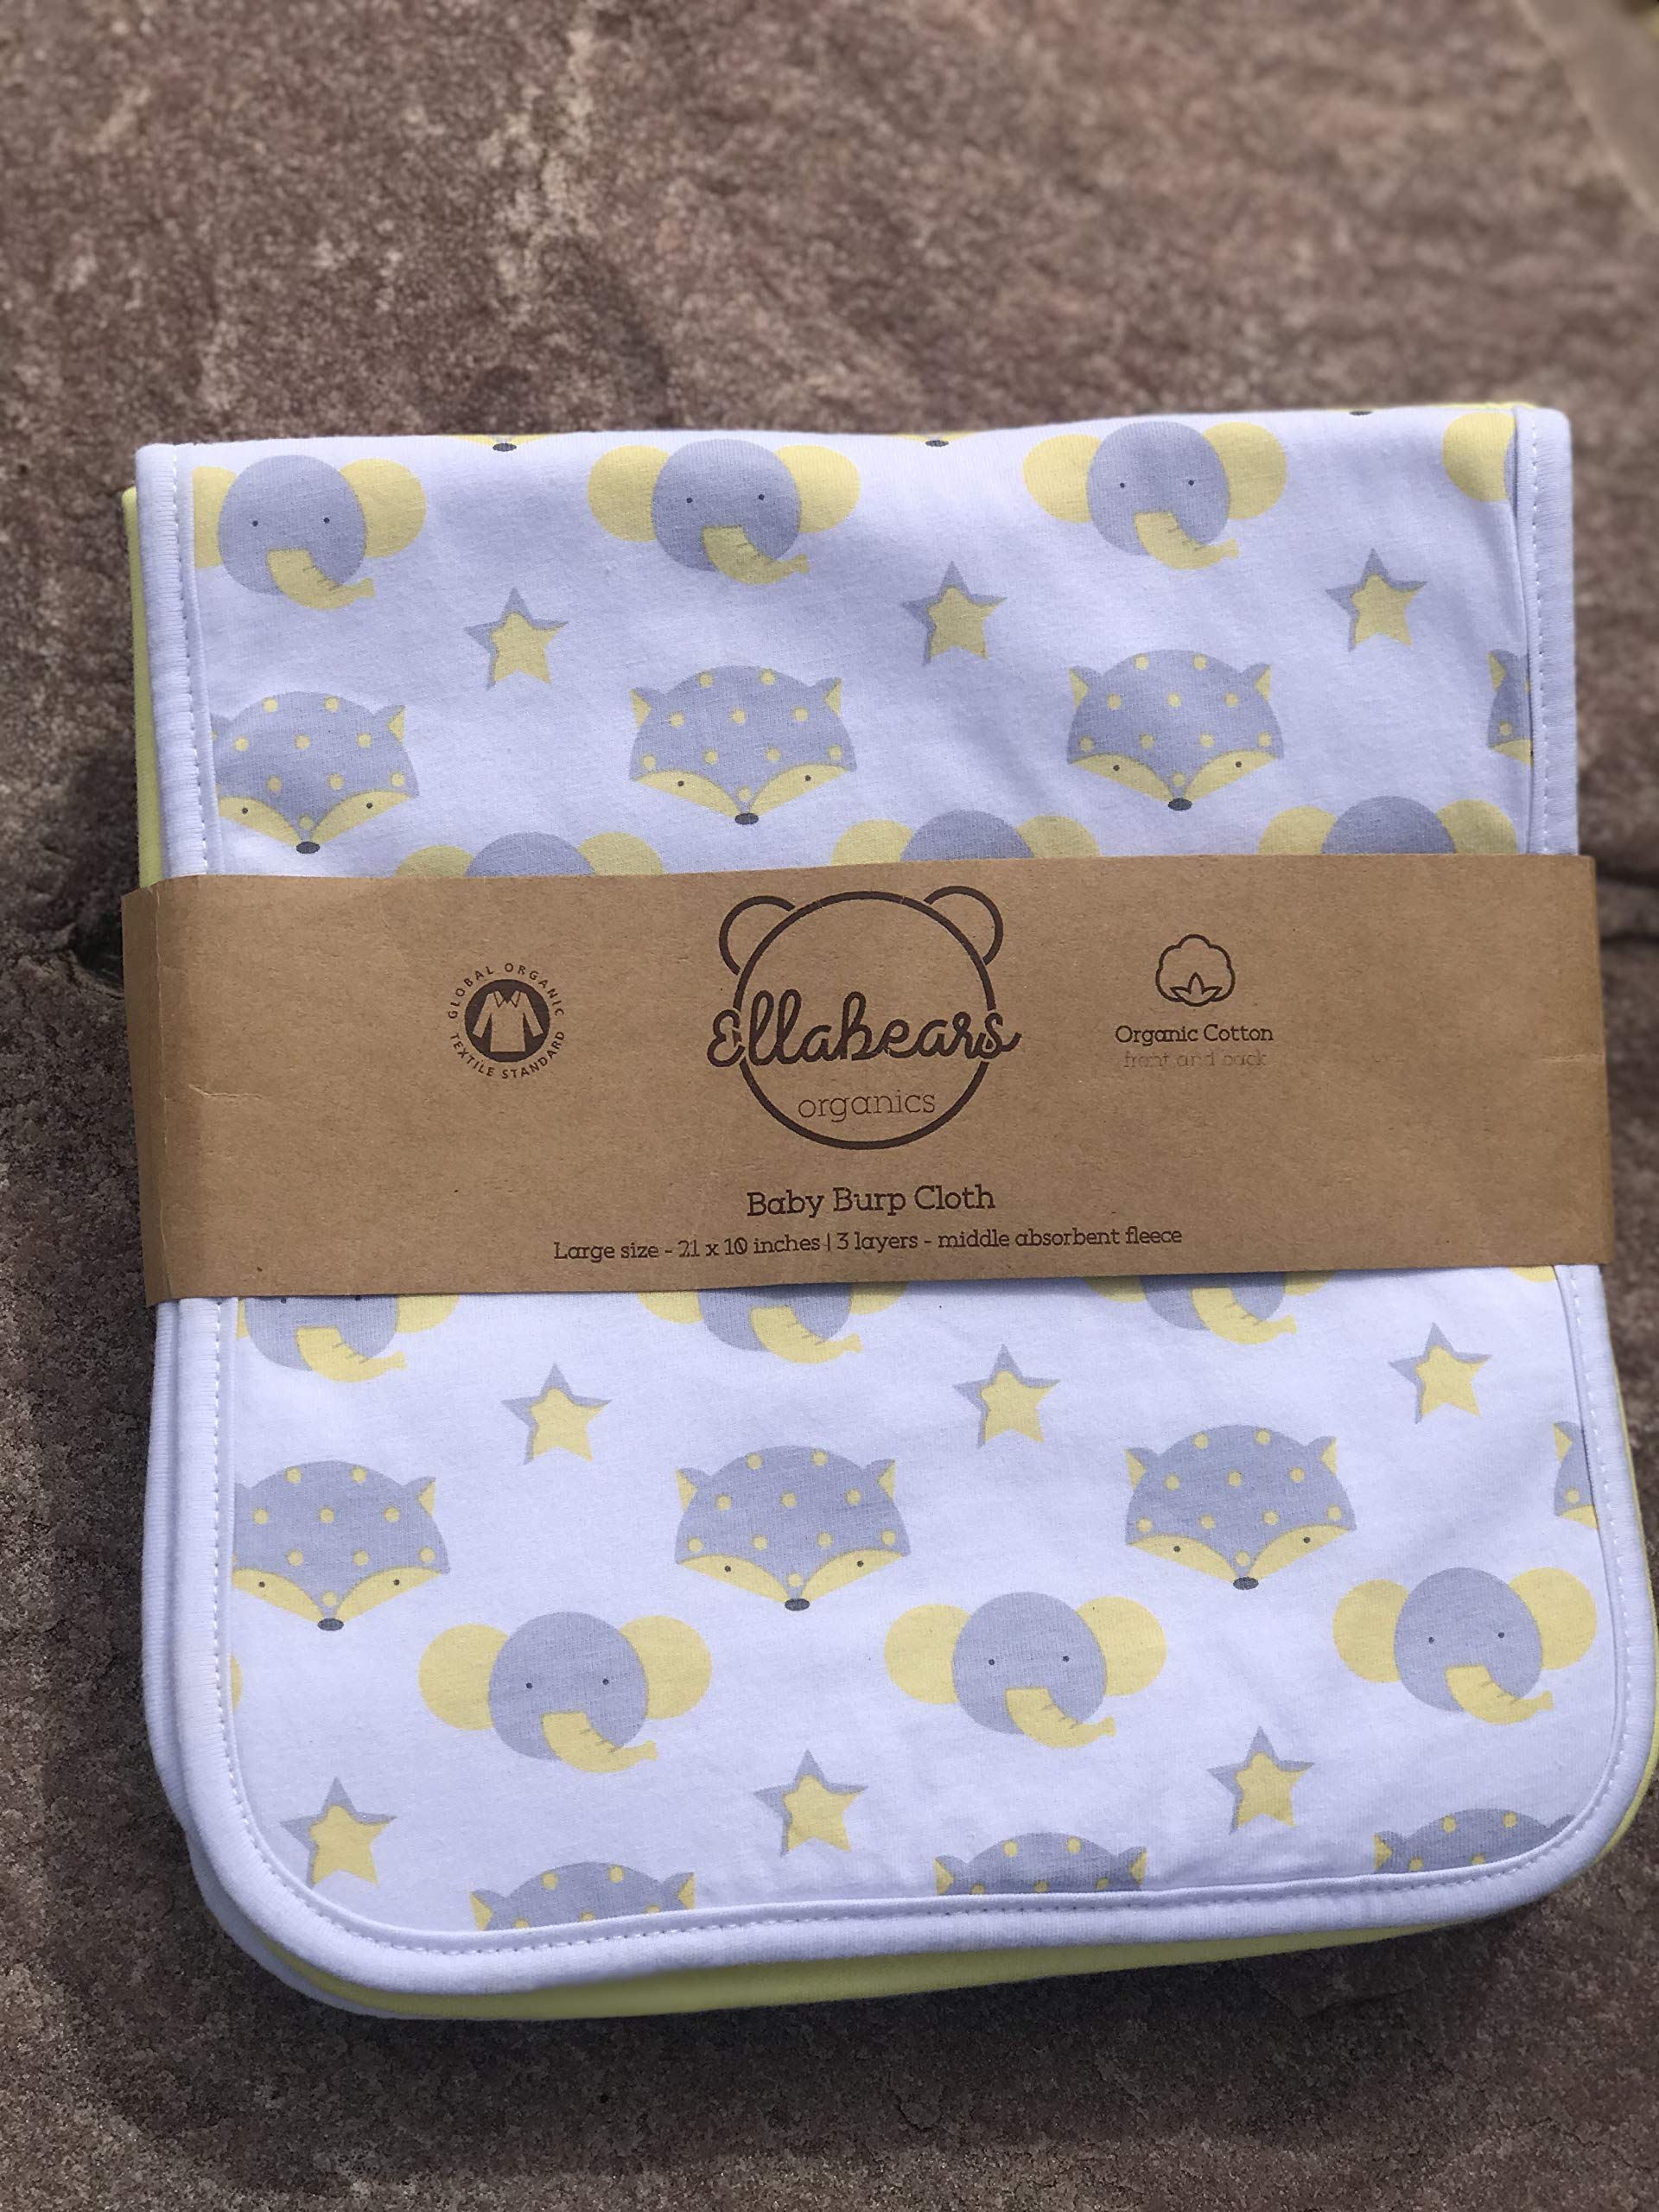 Ella Bears Organic Baby Burp Cloths 5 pack Super Absorbent 100% Organic 21X10 inch Extra Long |Triple Layers | Highest Organic Quality | Ultra Soft and Extremely Thick | Multiple Uses